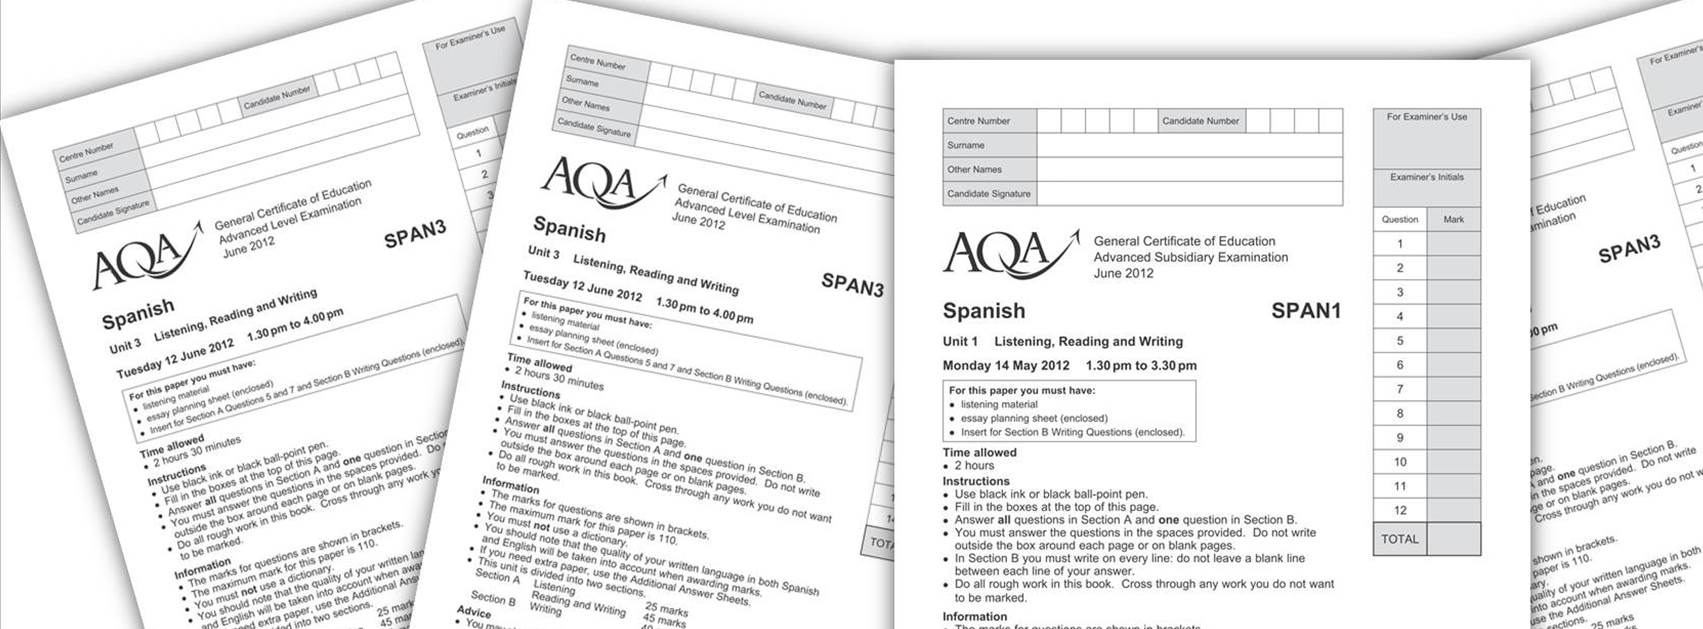 Spanish a level essay questions